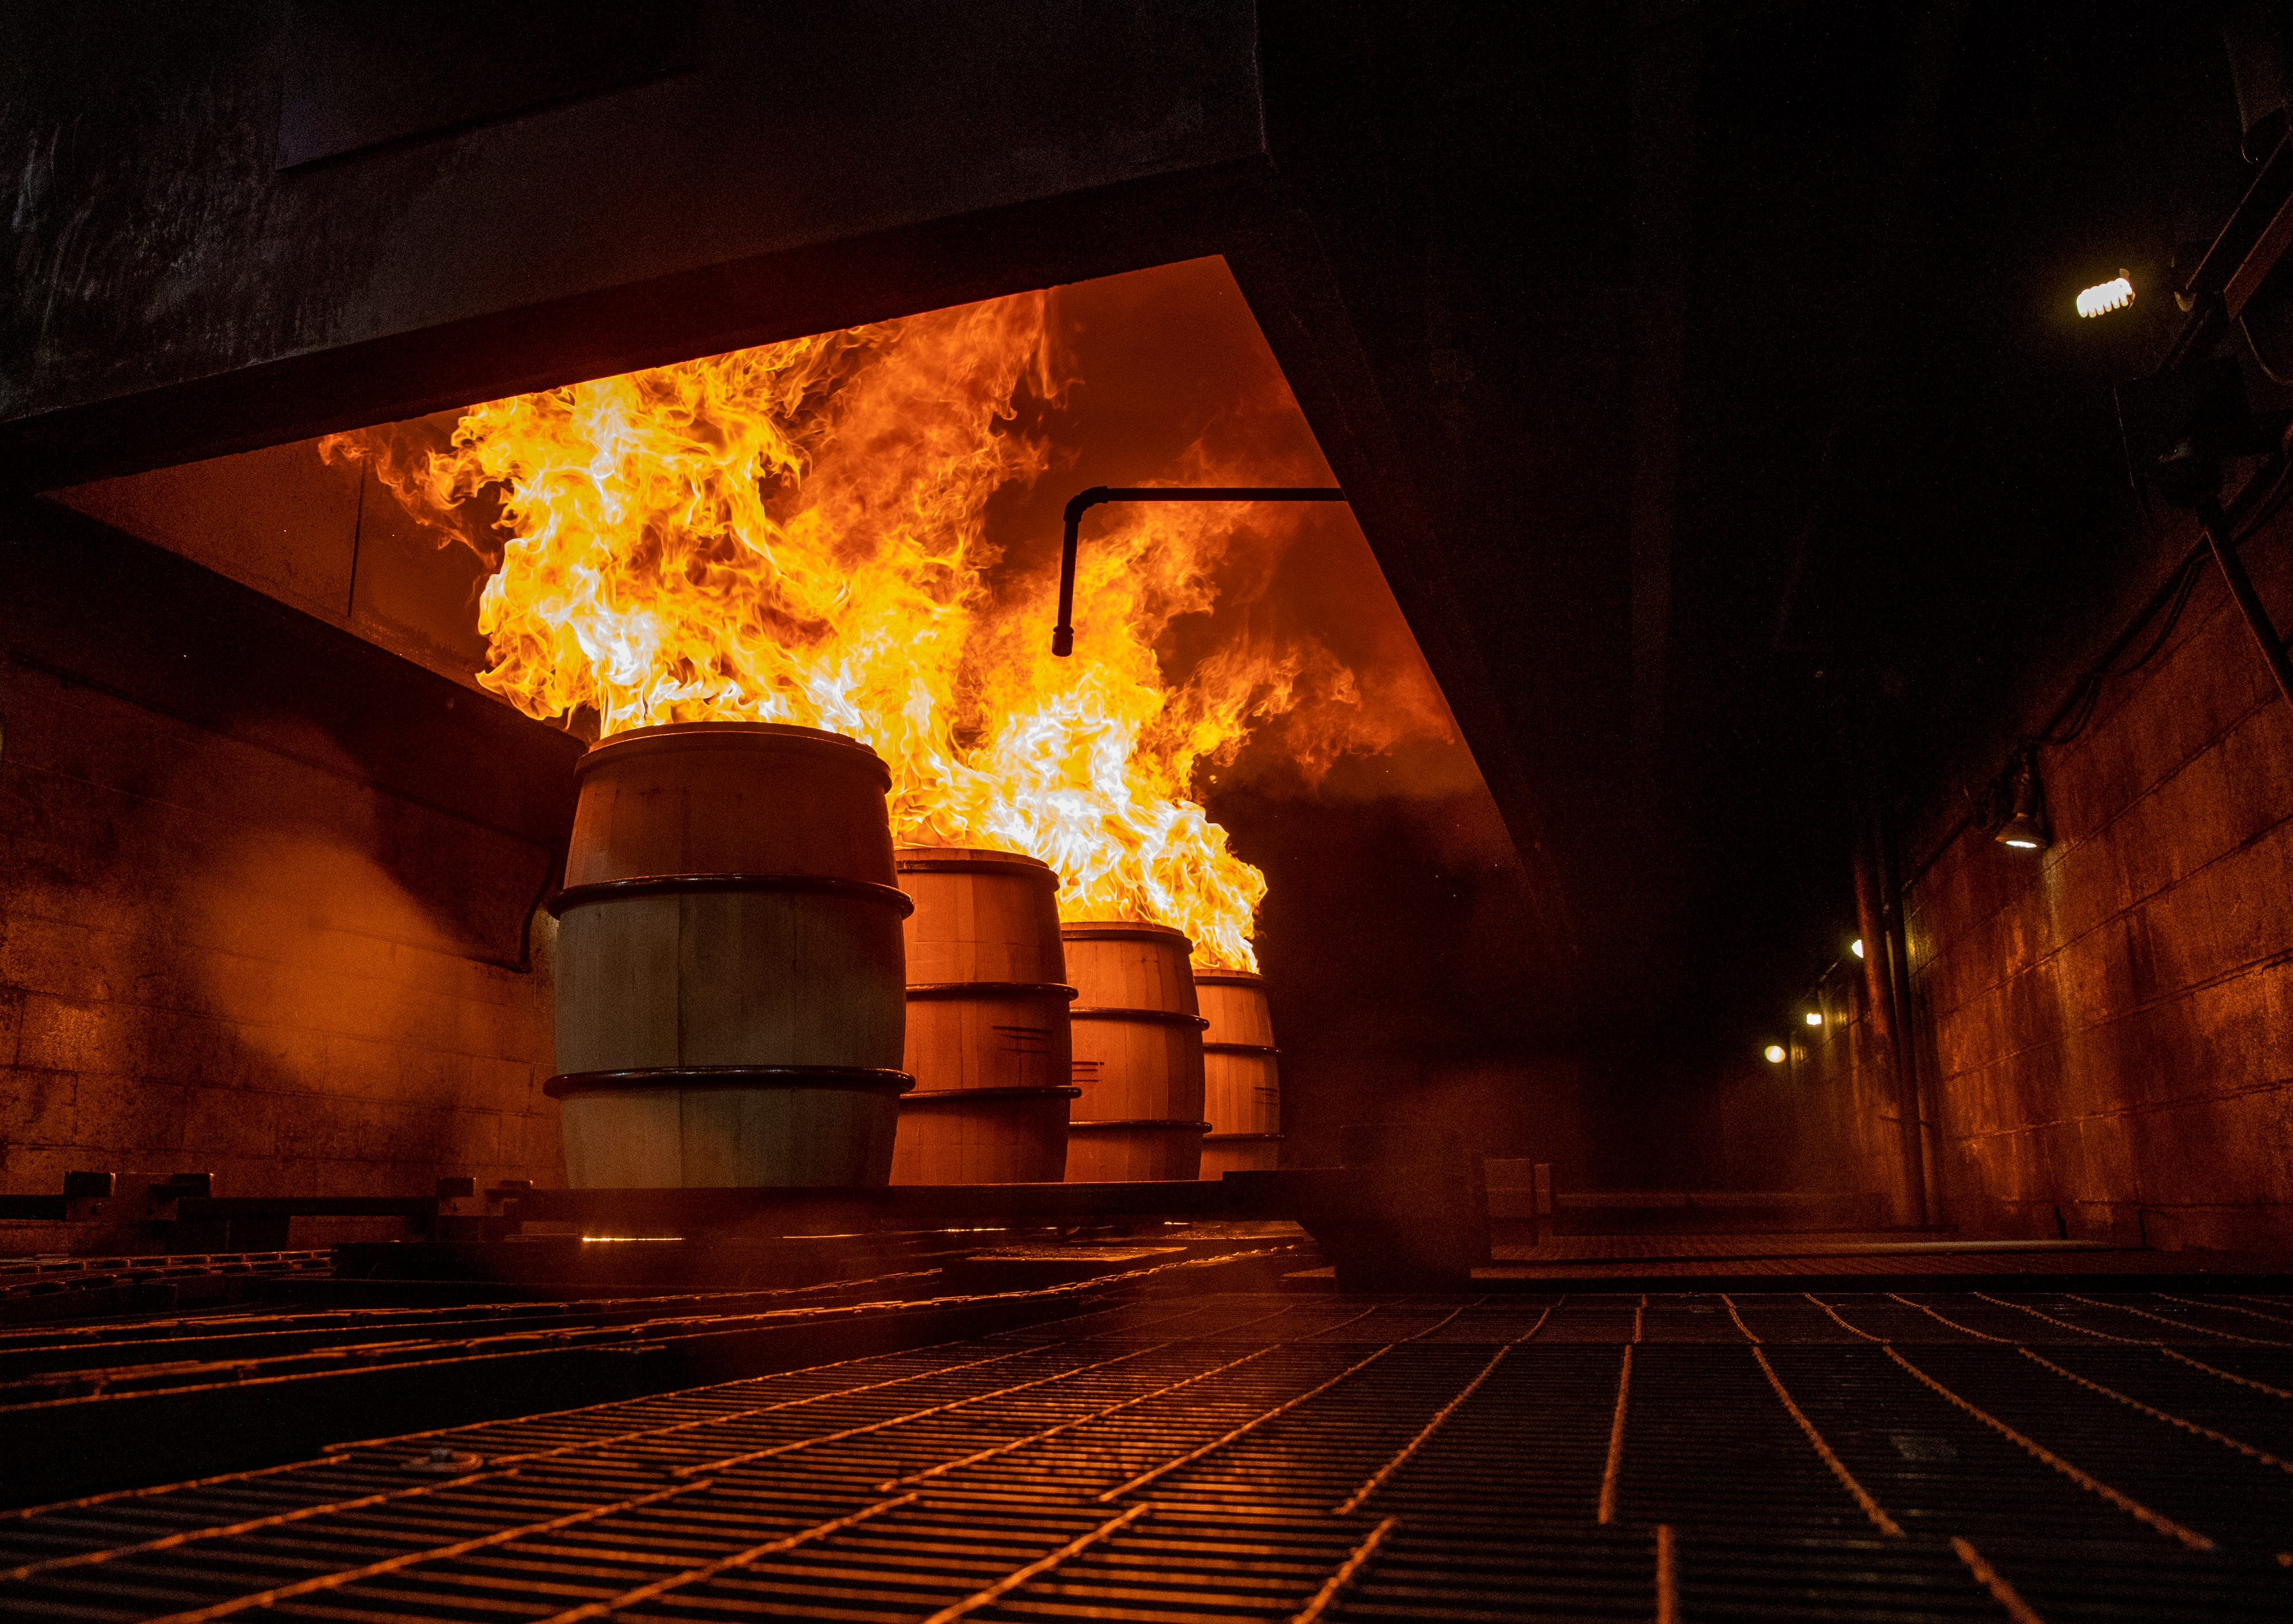 10:03 PMBourbon barrels are charred before being capped and shipped at the Brown-Forman Cooperage on Jan. 28, 2020